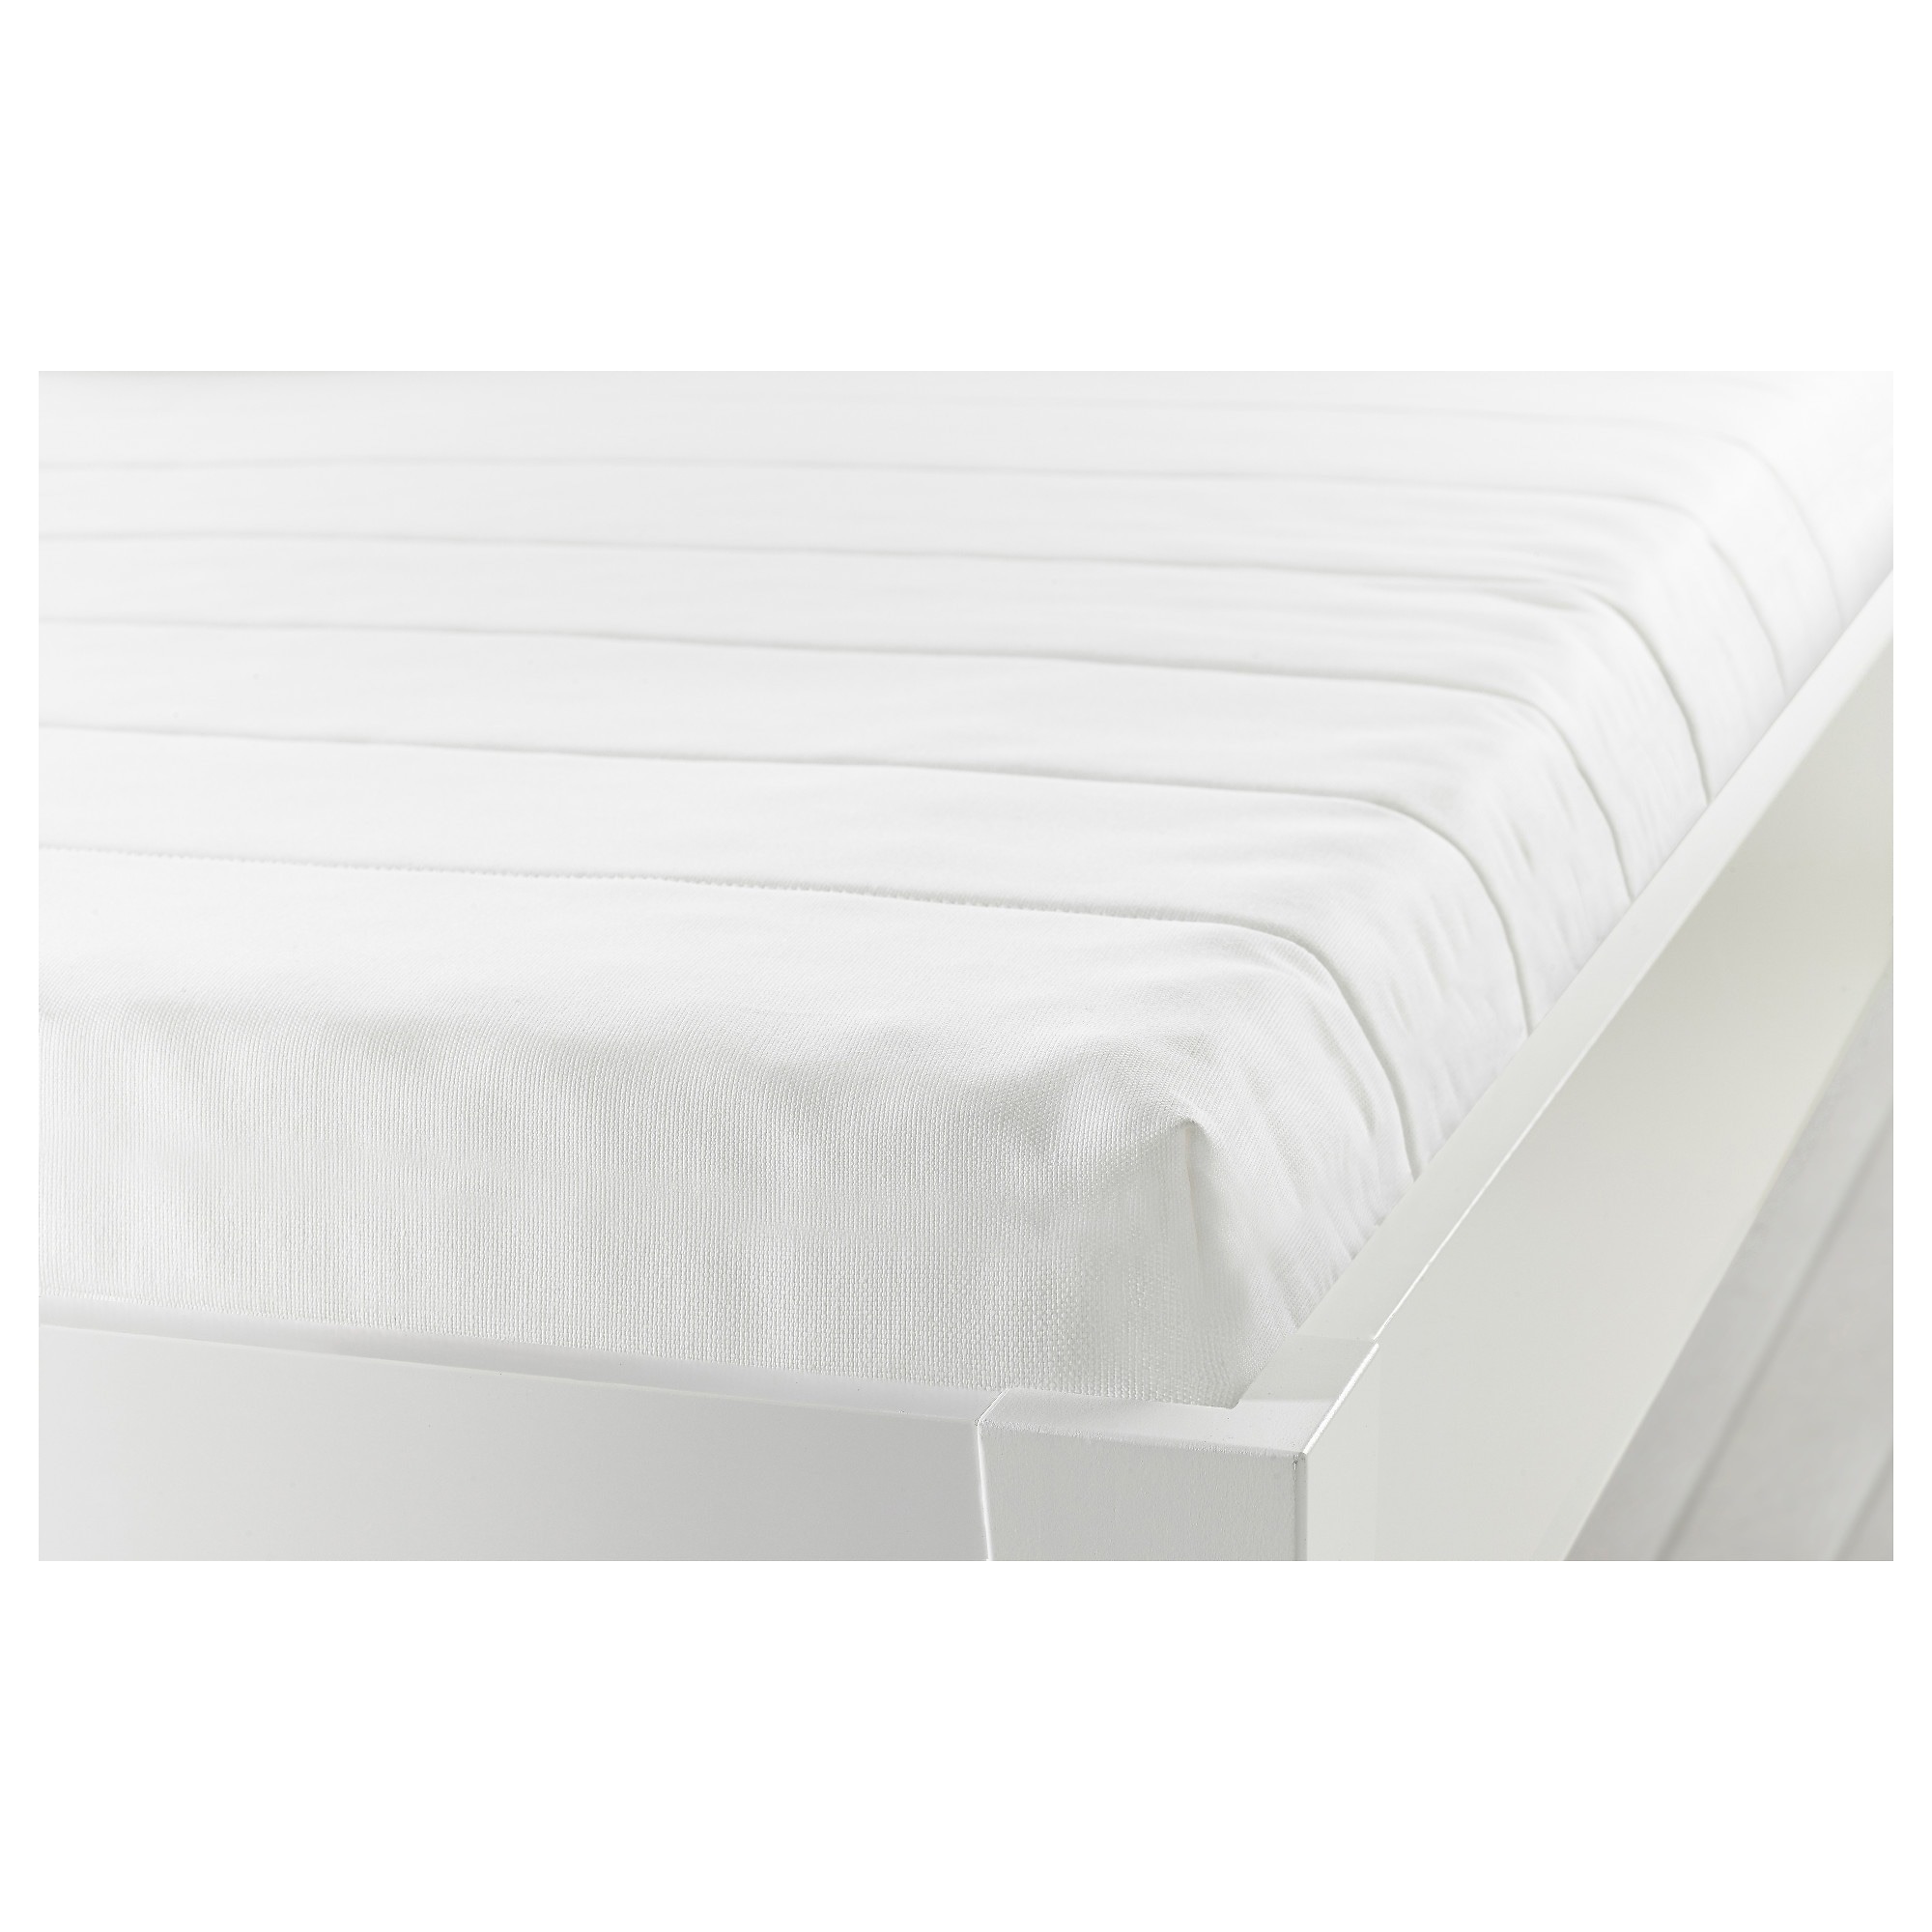 Perfect minnesund with tapis mousse bb ikea - Parc bebe ikea ...